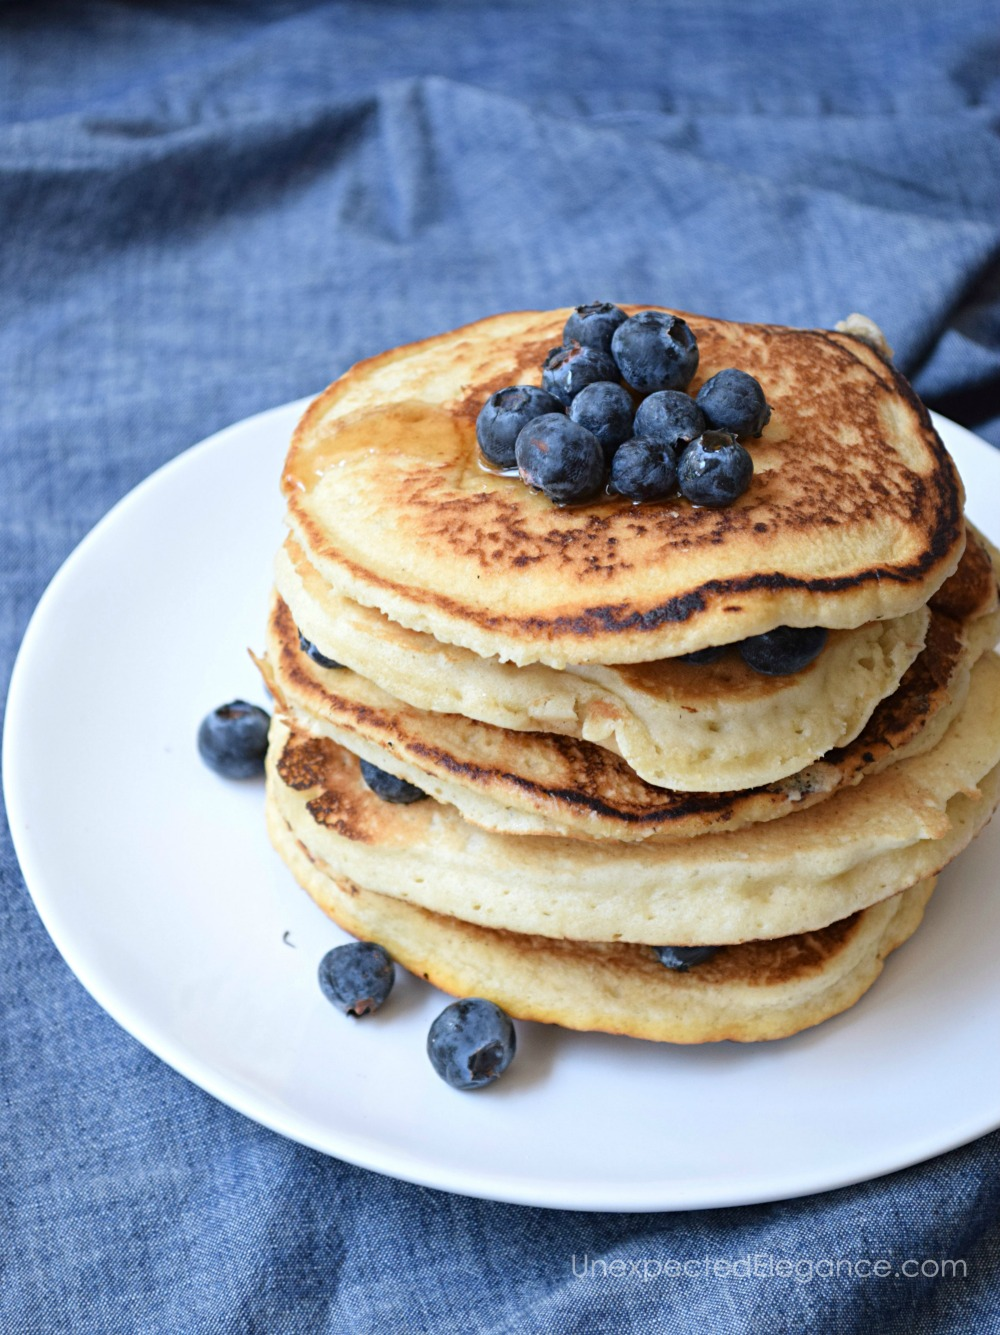 Gluten free and vegan pancakes! These are so delicious!